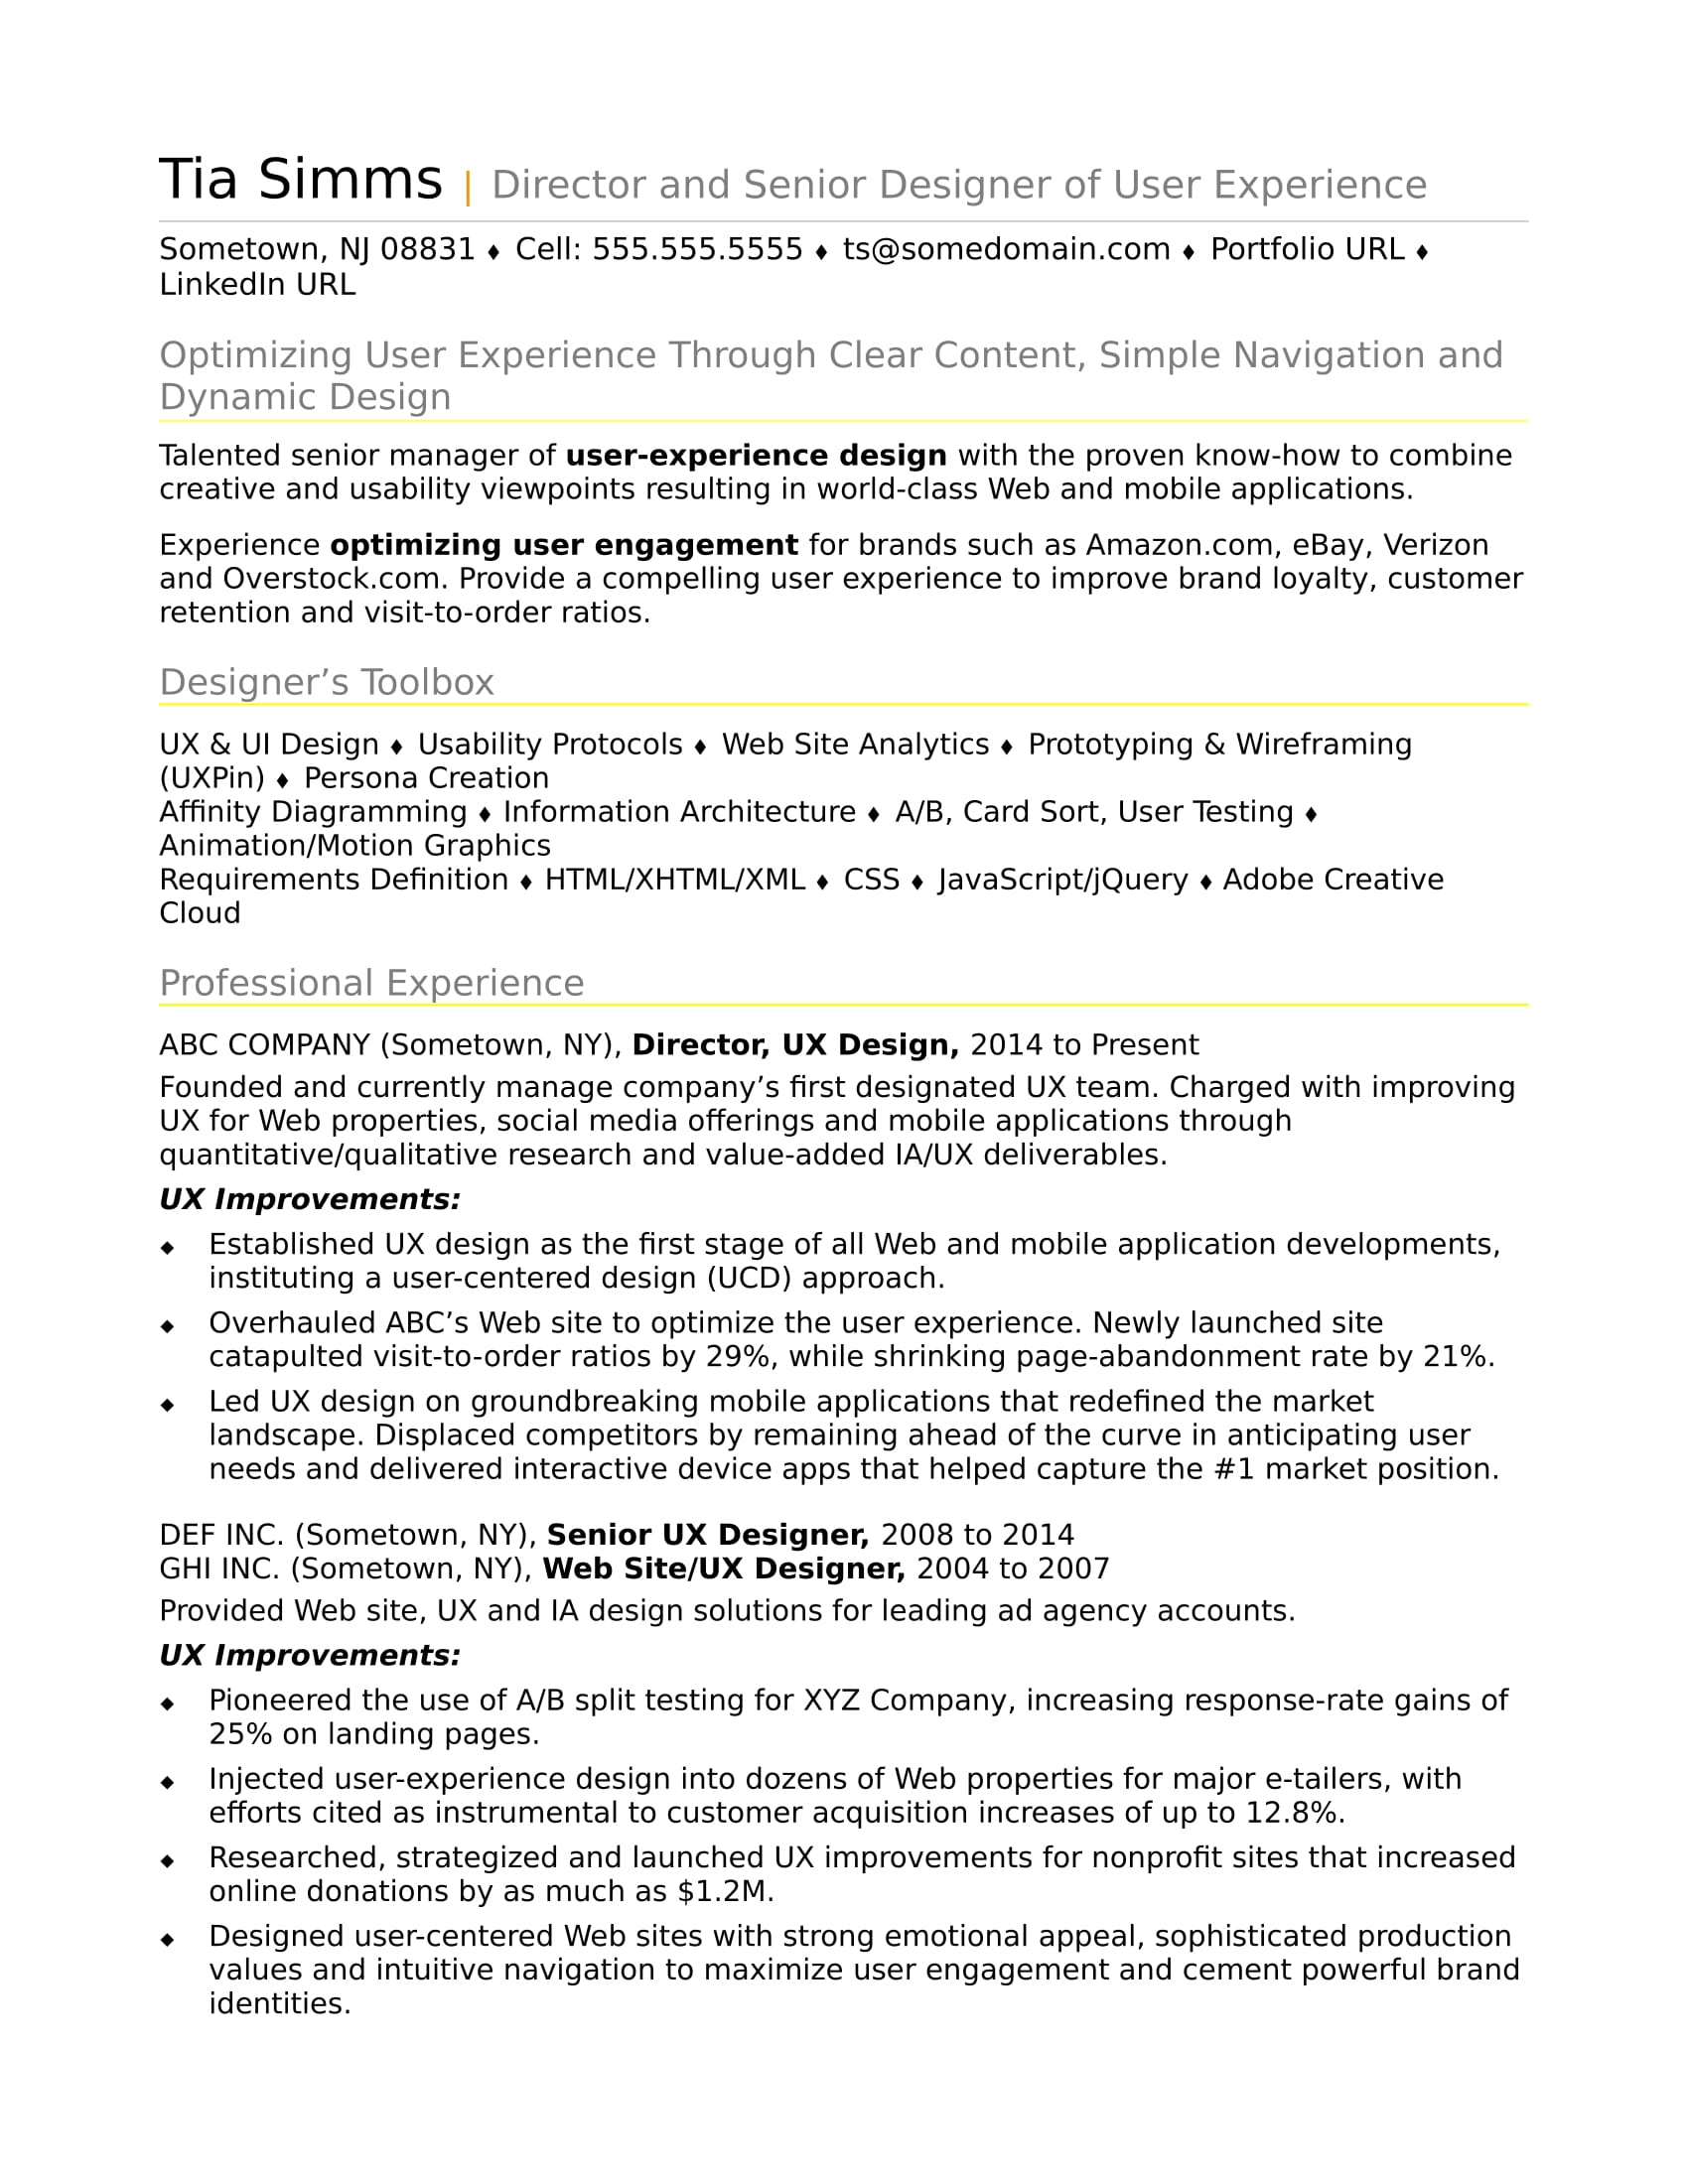 Sample resume for an experienced ux designer monster sample resume for an experienced ux designer madrichimfo Choice Image